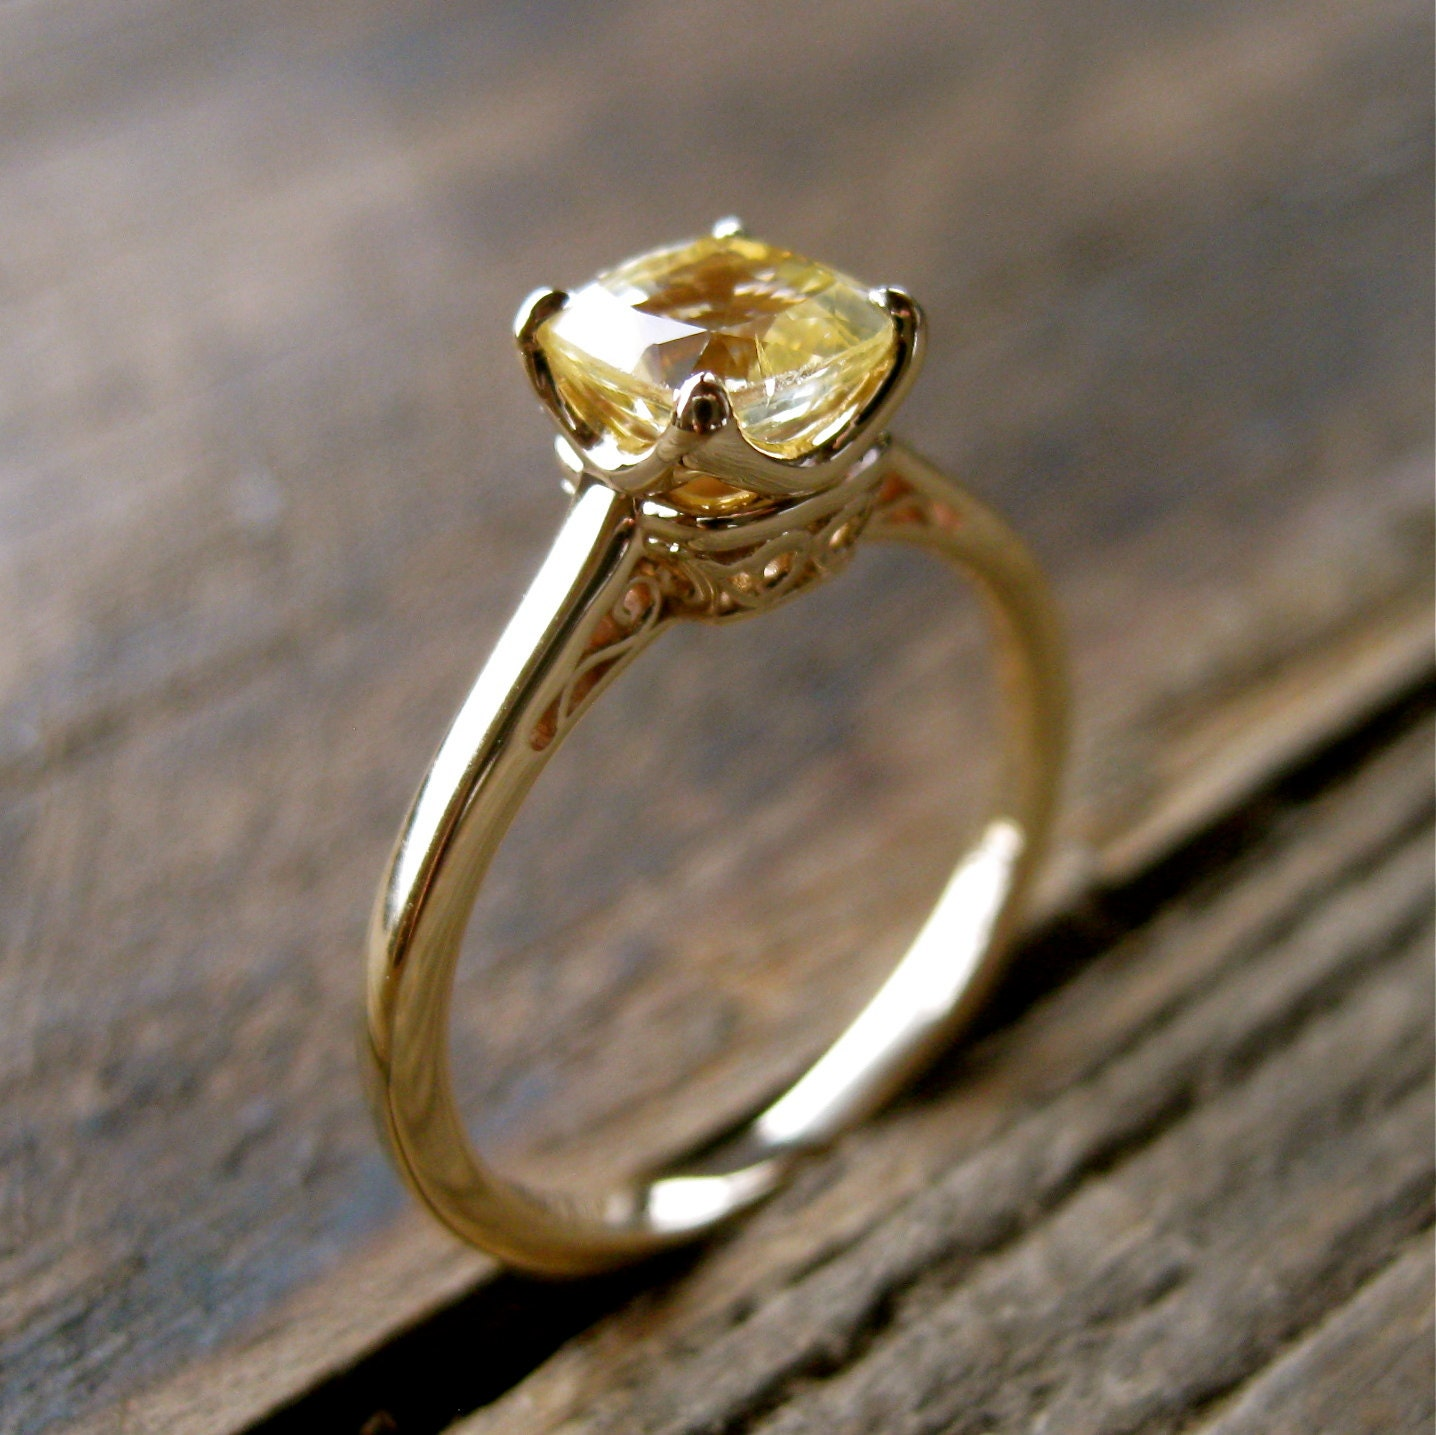 cushion cut yellow sapphire engagement ring in 14k yellow gold. Black Bedroom Furniture Sets. Home Design Ideas